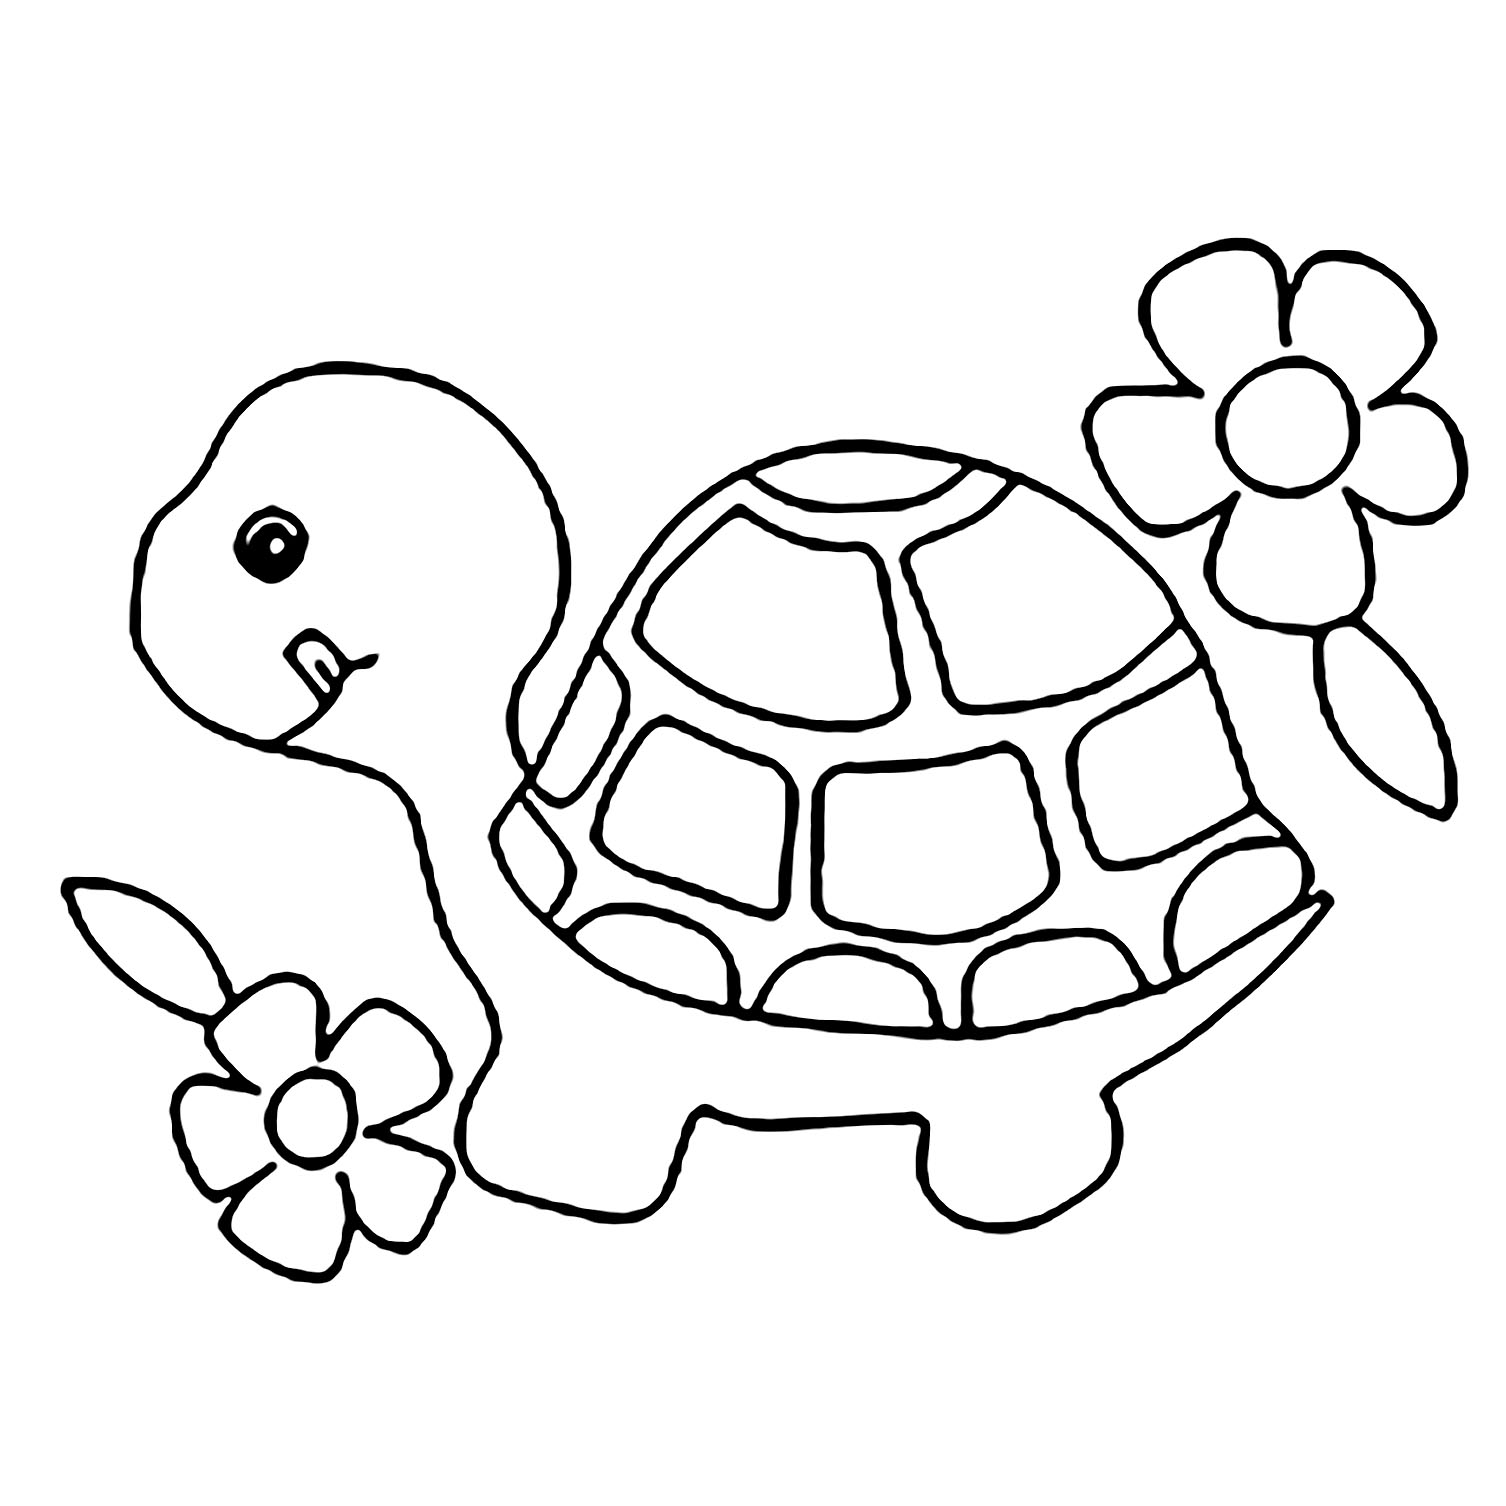 Turtles to download for free   Turtles Kids Coloring Pages